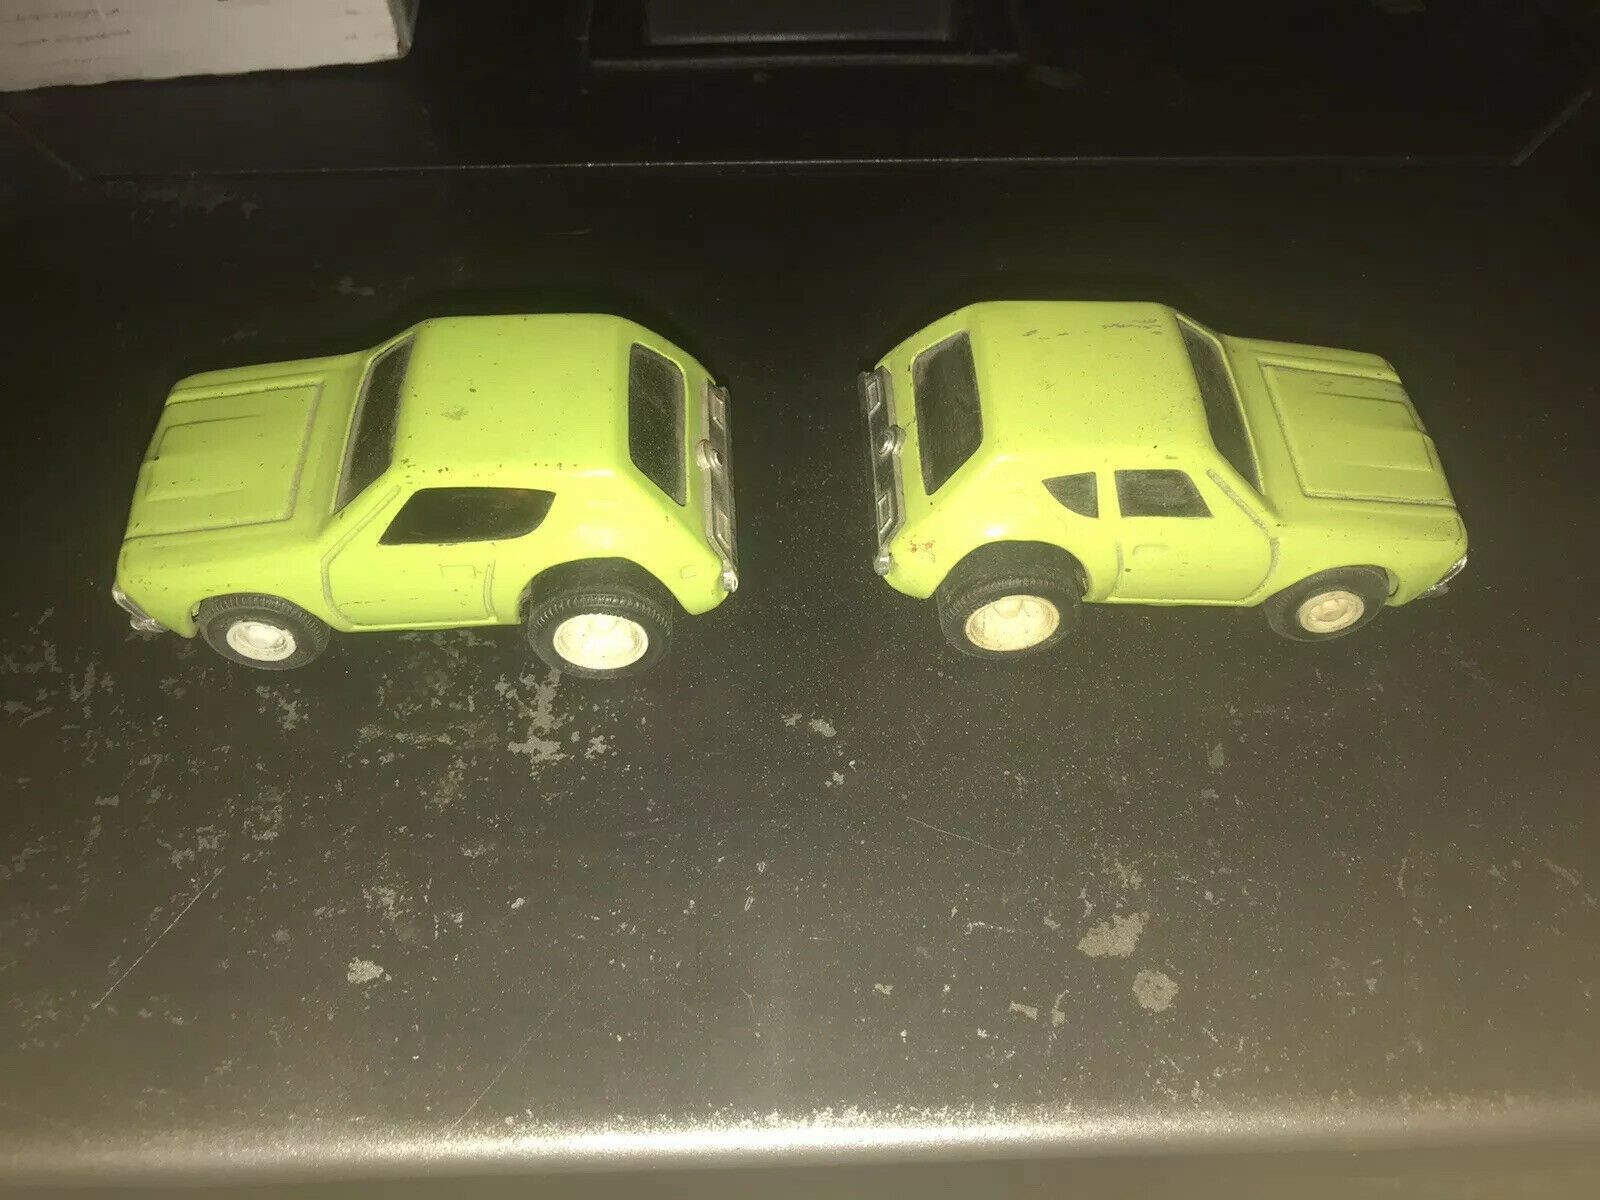 2 Amc Gremlin Tonka Toy Cars Ebay In 2020 Toy Car Amc Gremlin Tonka Toys